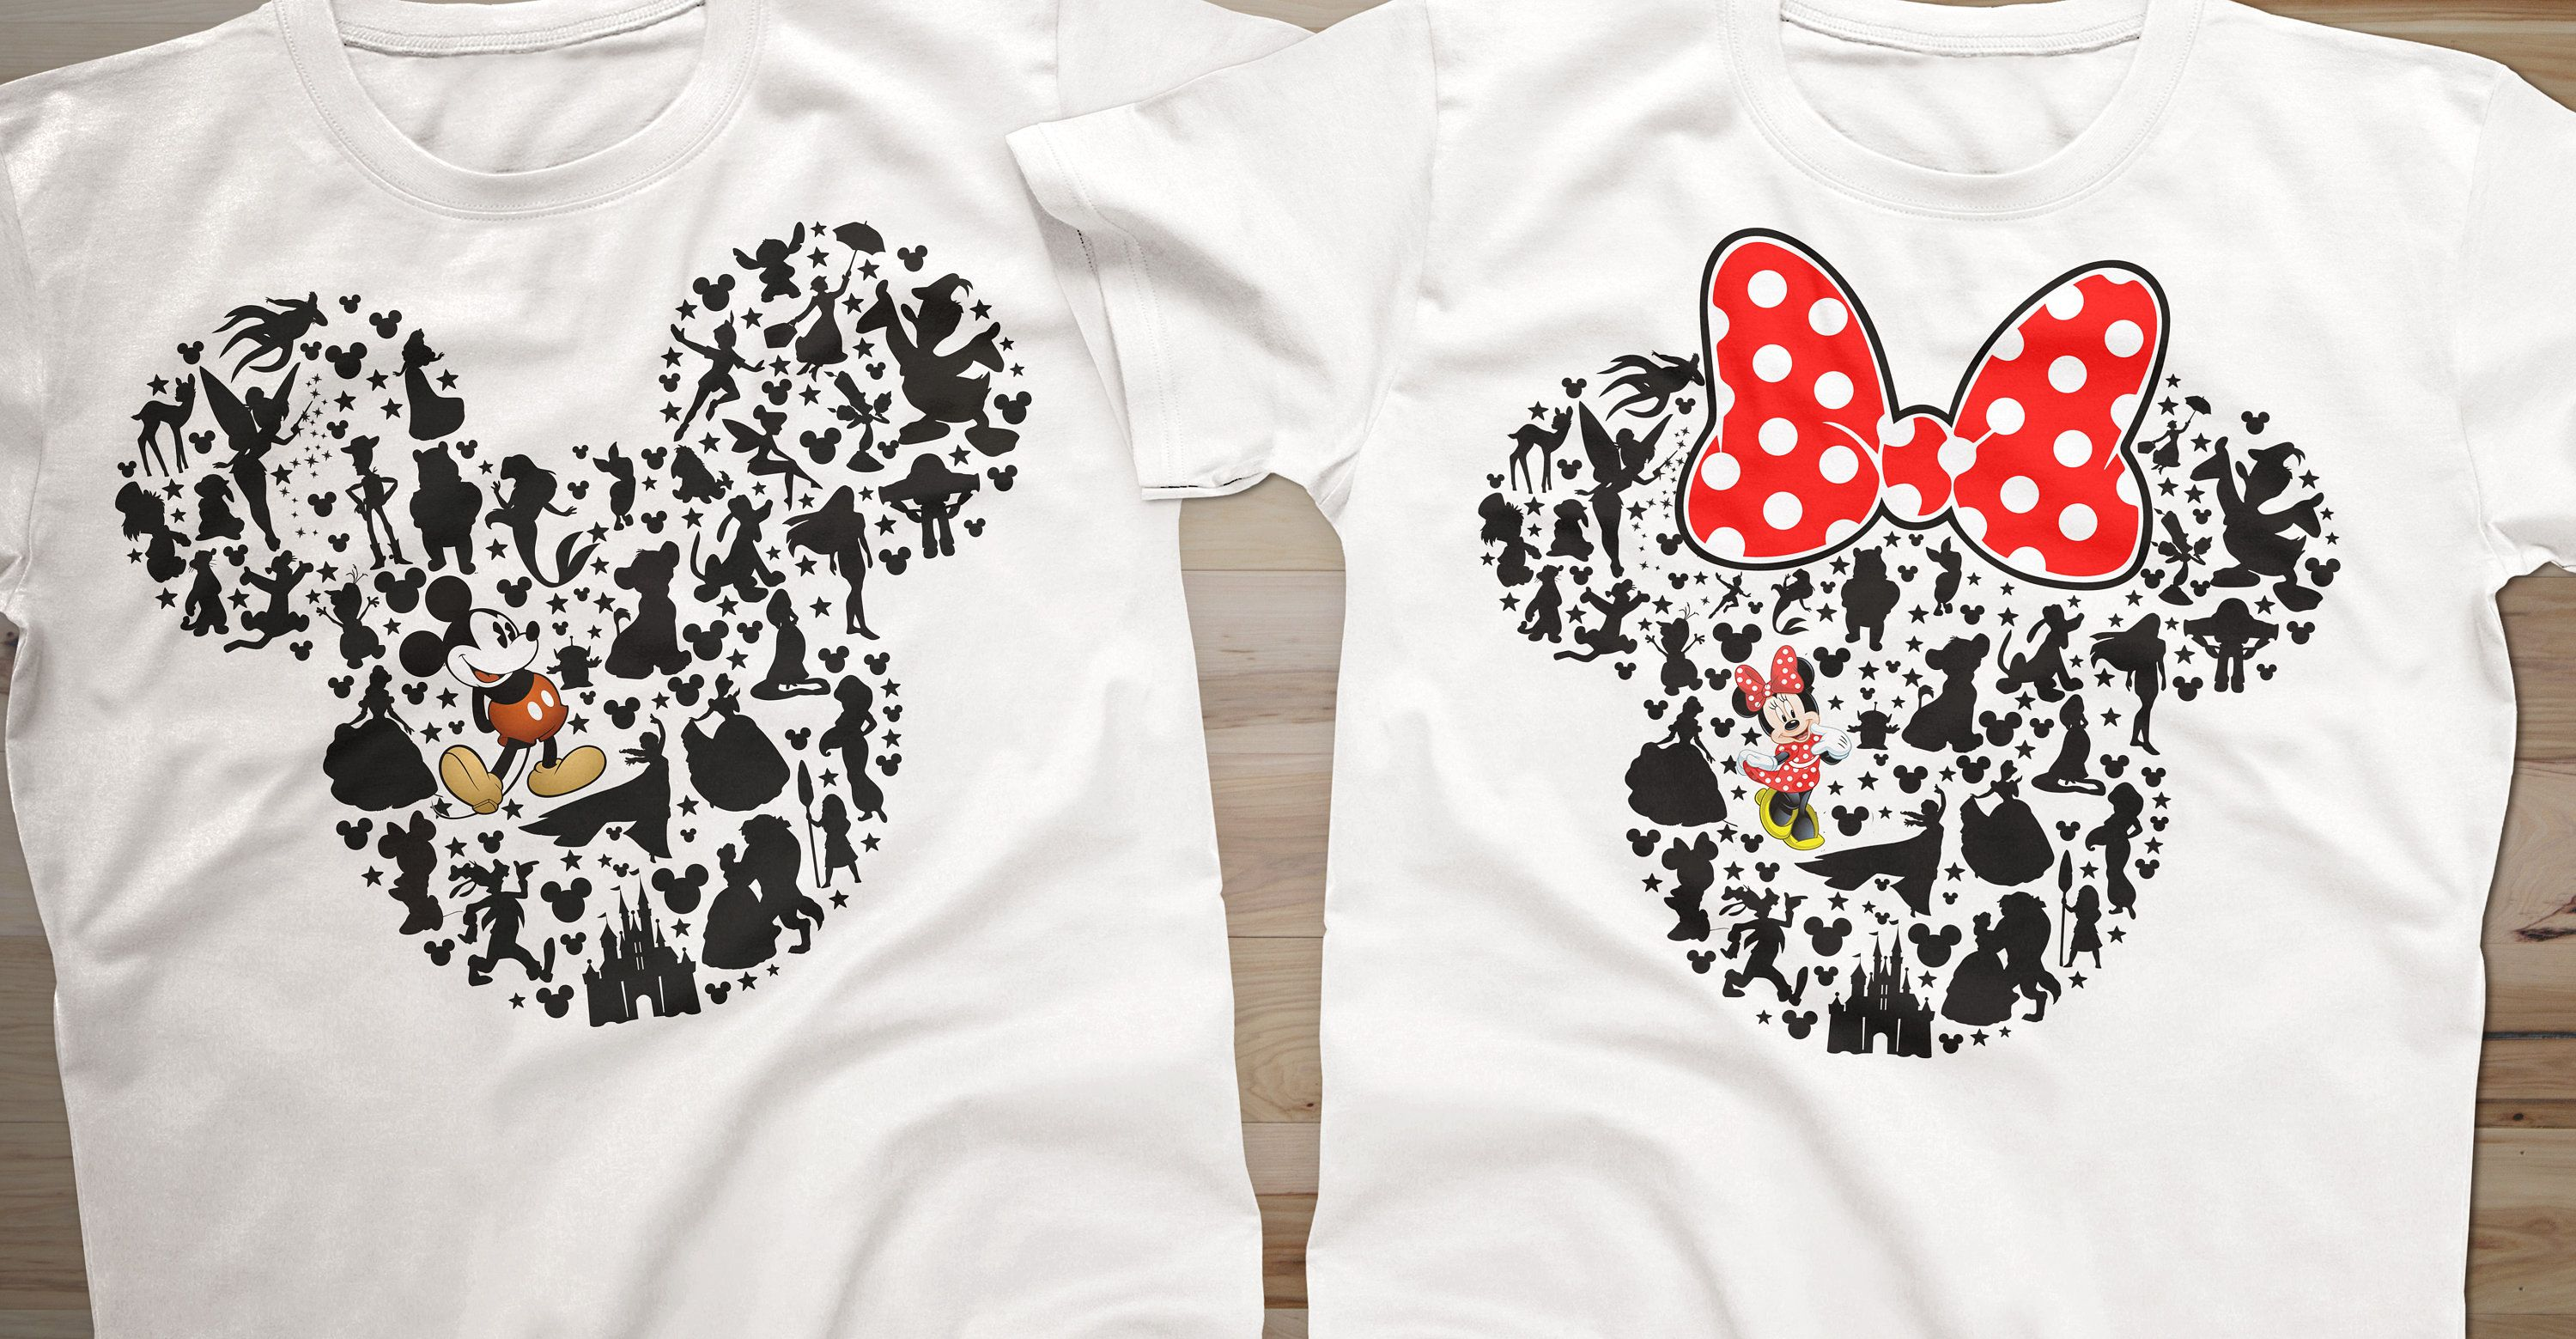 Disney Matching Shirts Etsy | Kuenzi Turf & Nursery